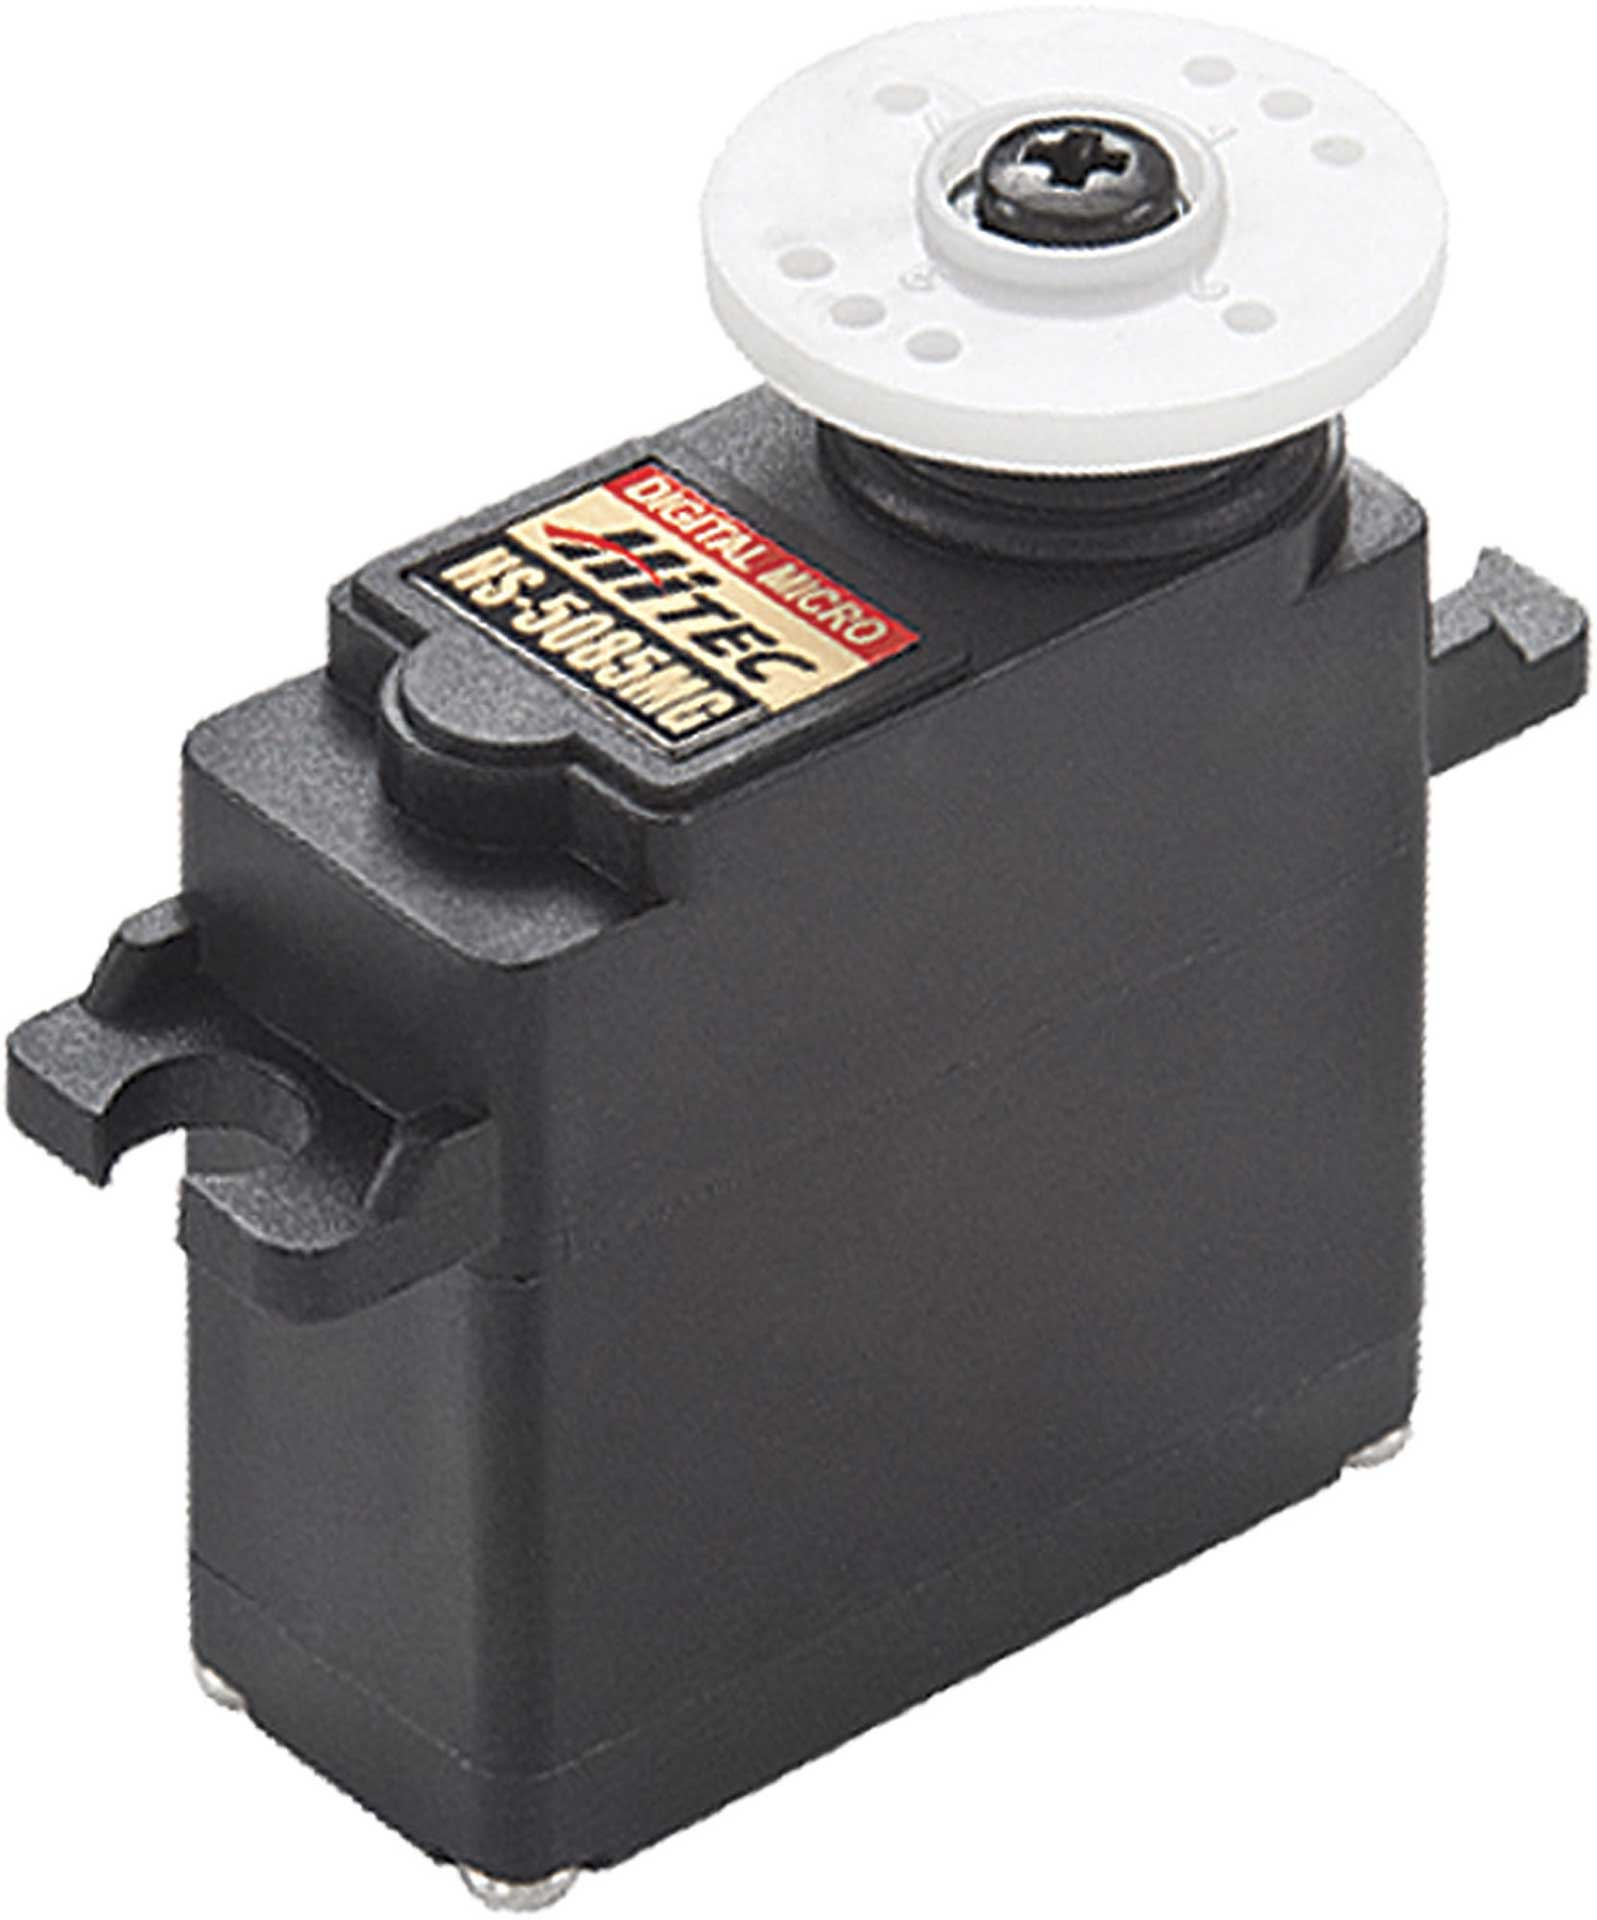 HITEC HS-5085 MG DIGITAL UNI SERVO